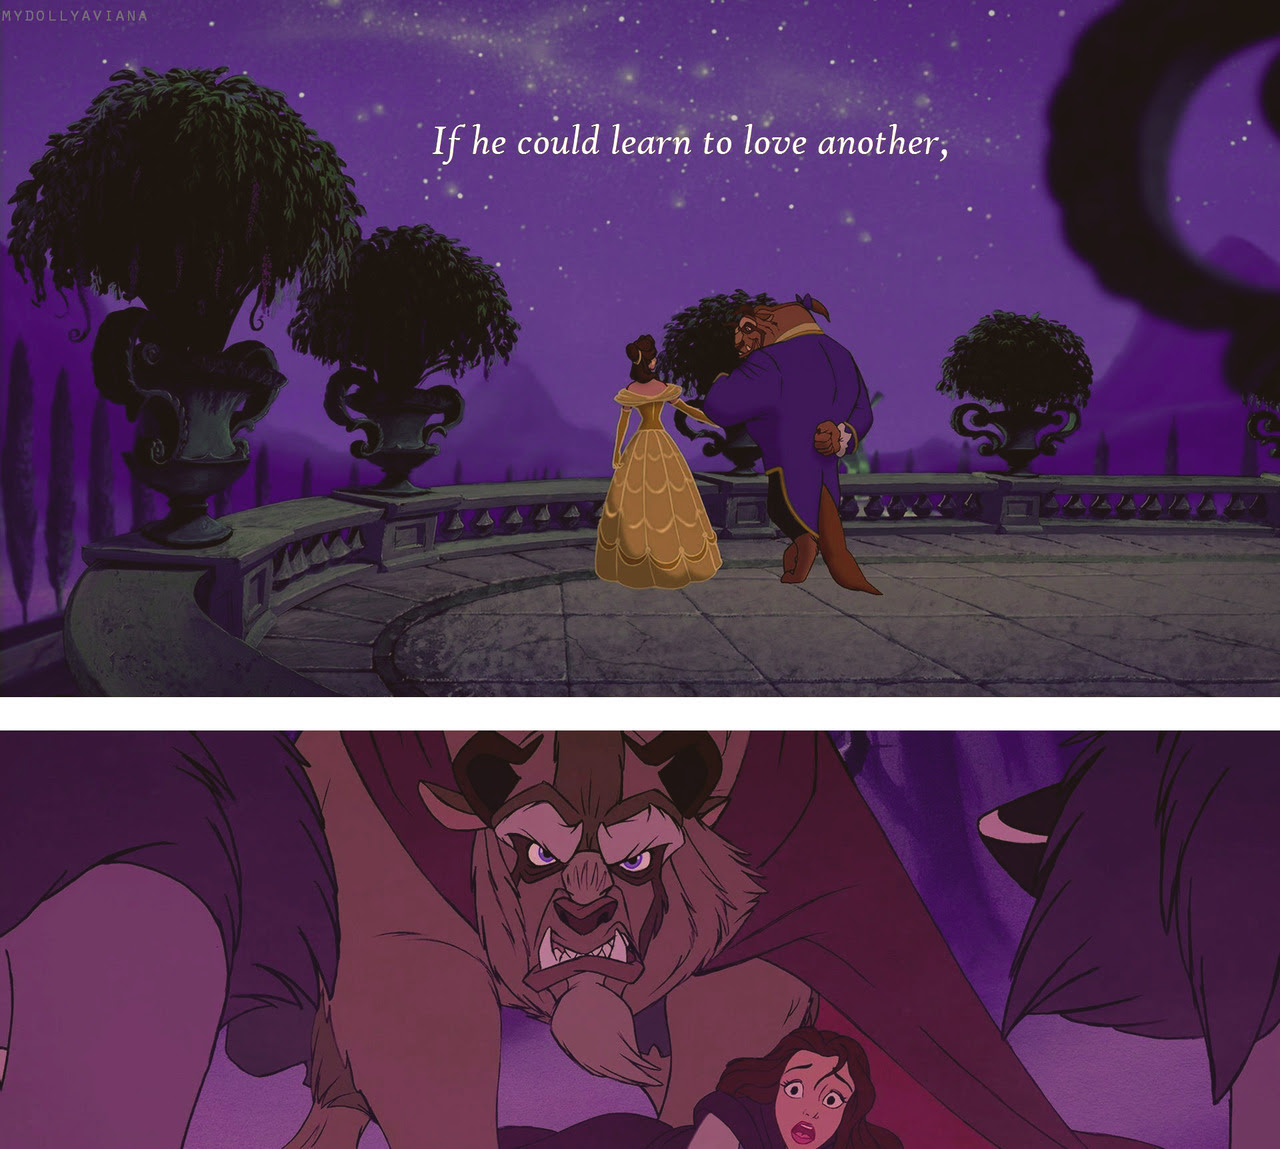 Love Disney Sad My Work Beauty And The Beast Belle Love Story Disney